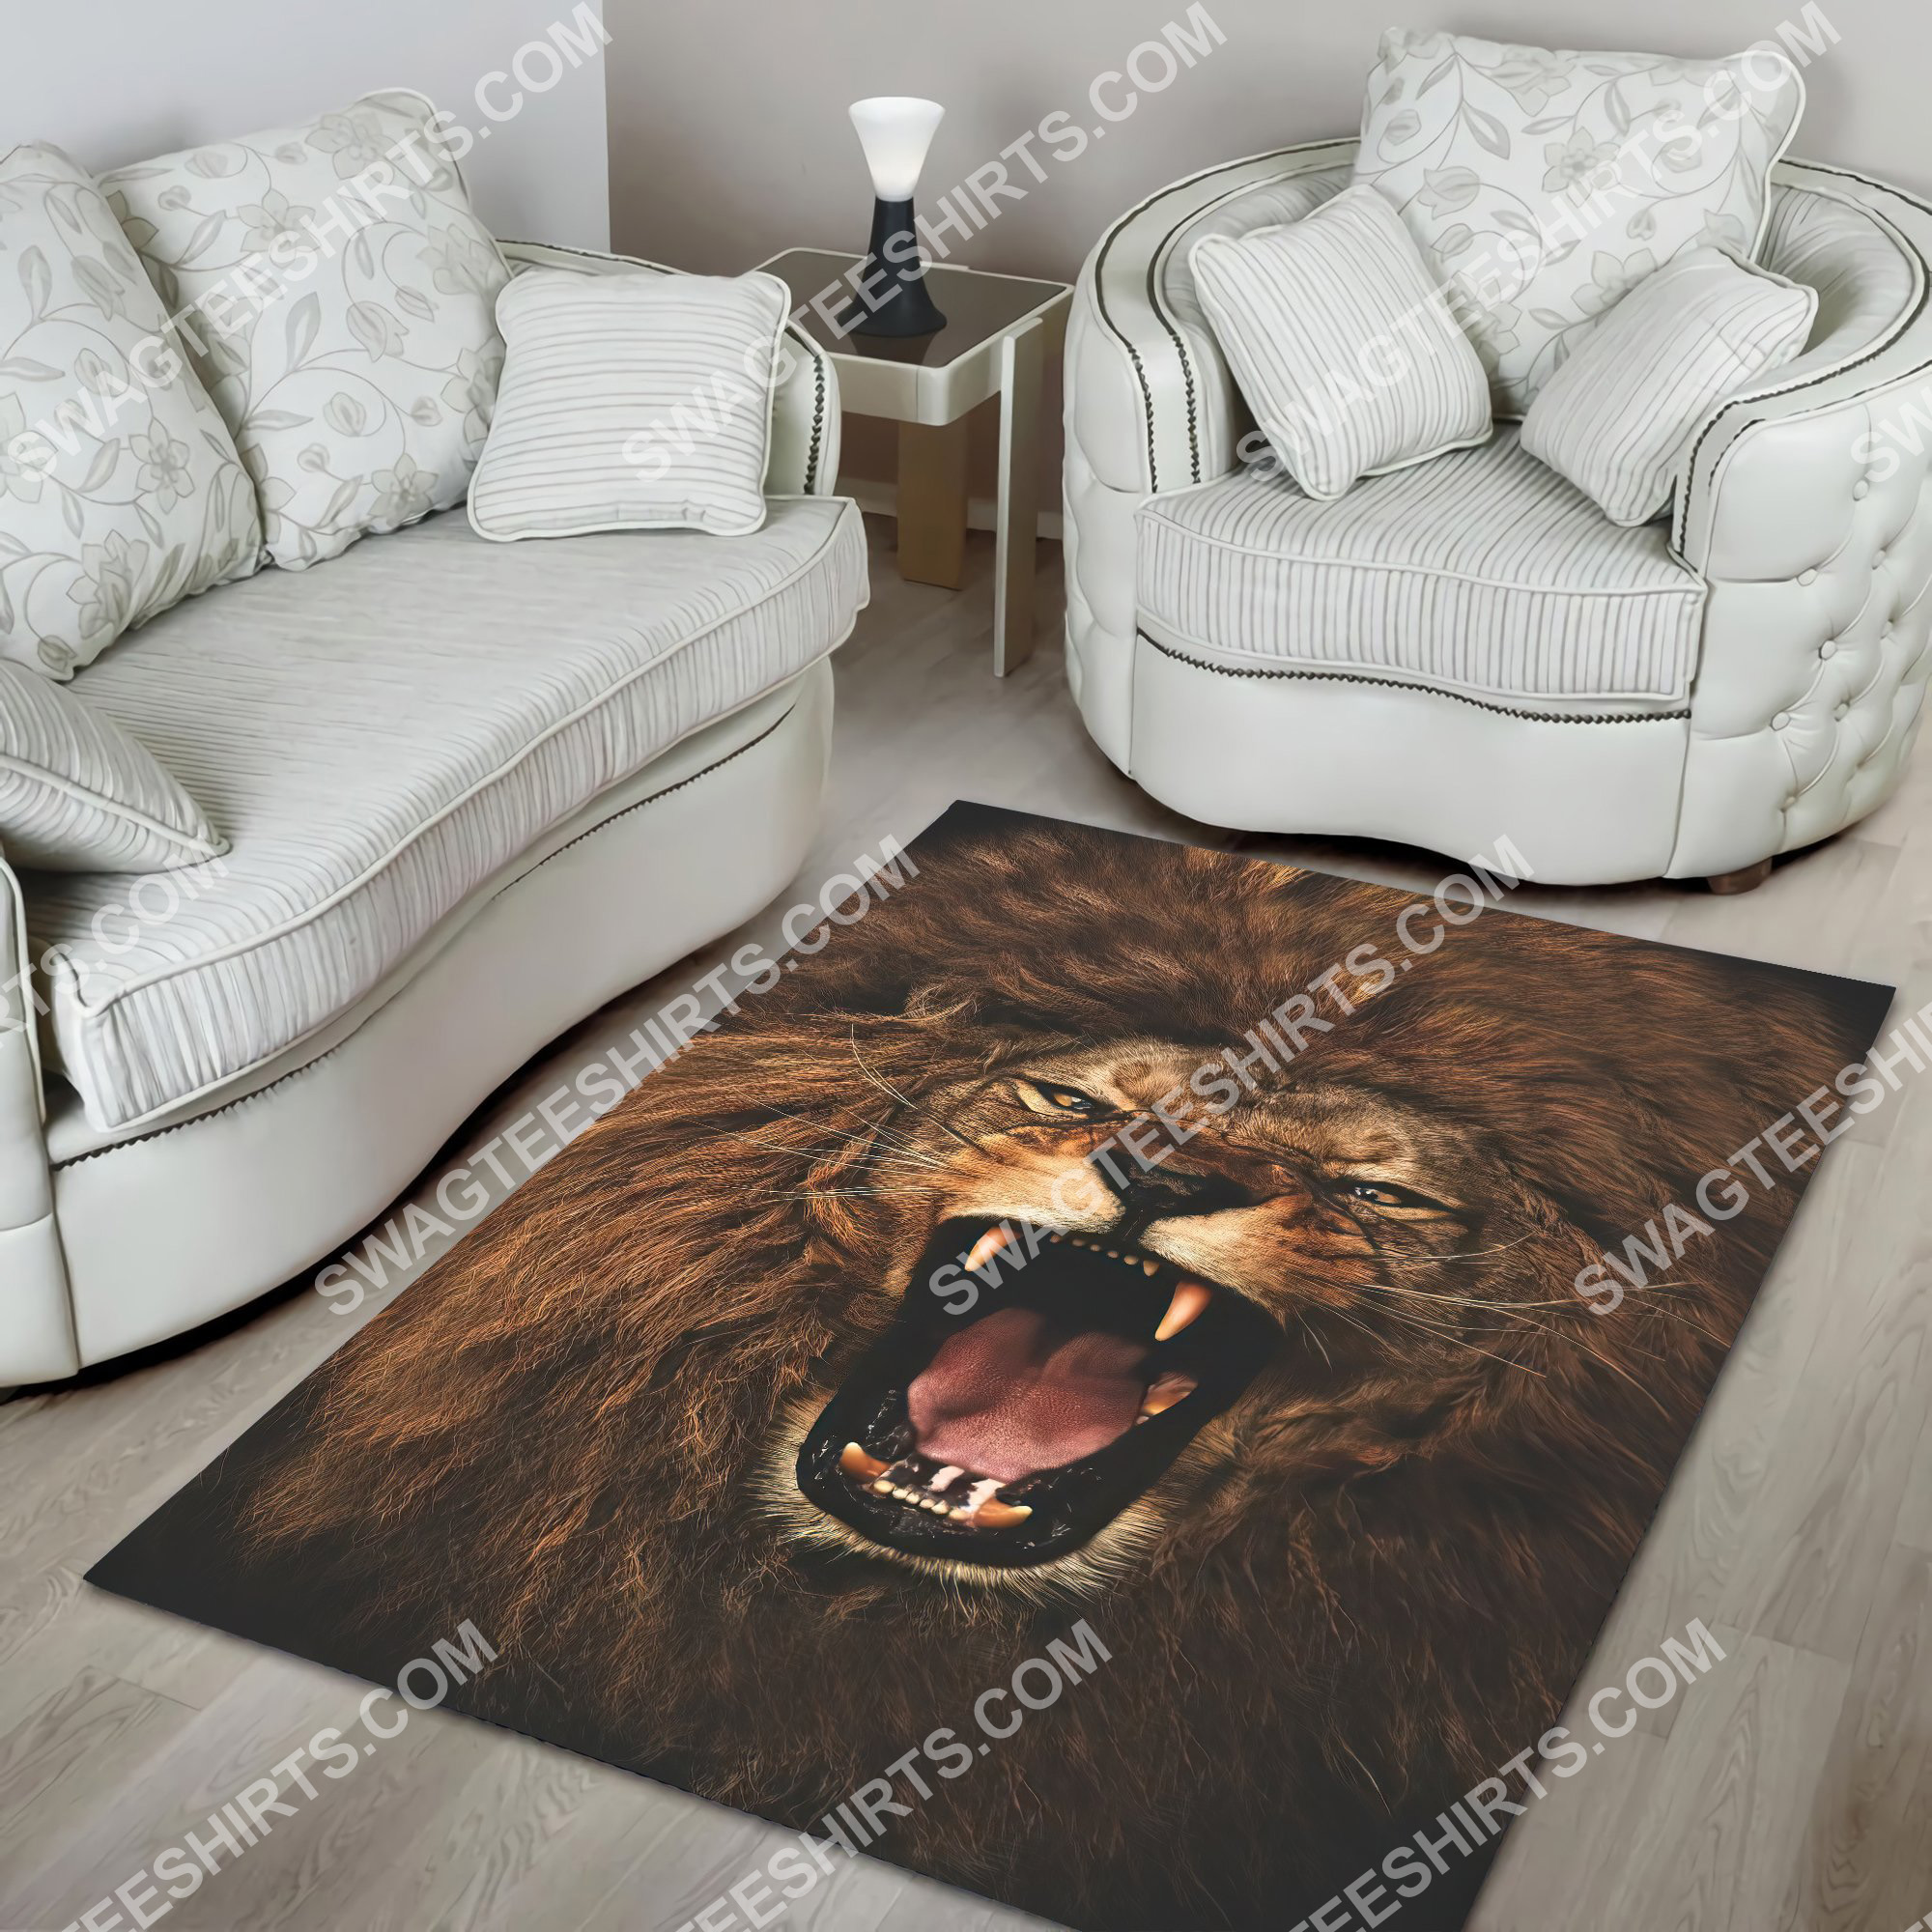 the alpha king lion all over printed rug 4(1)